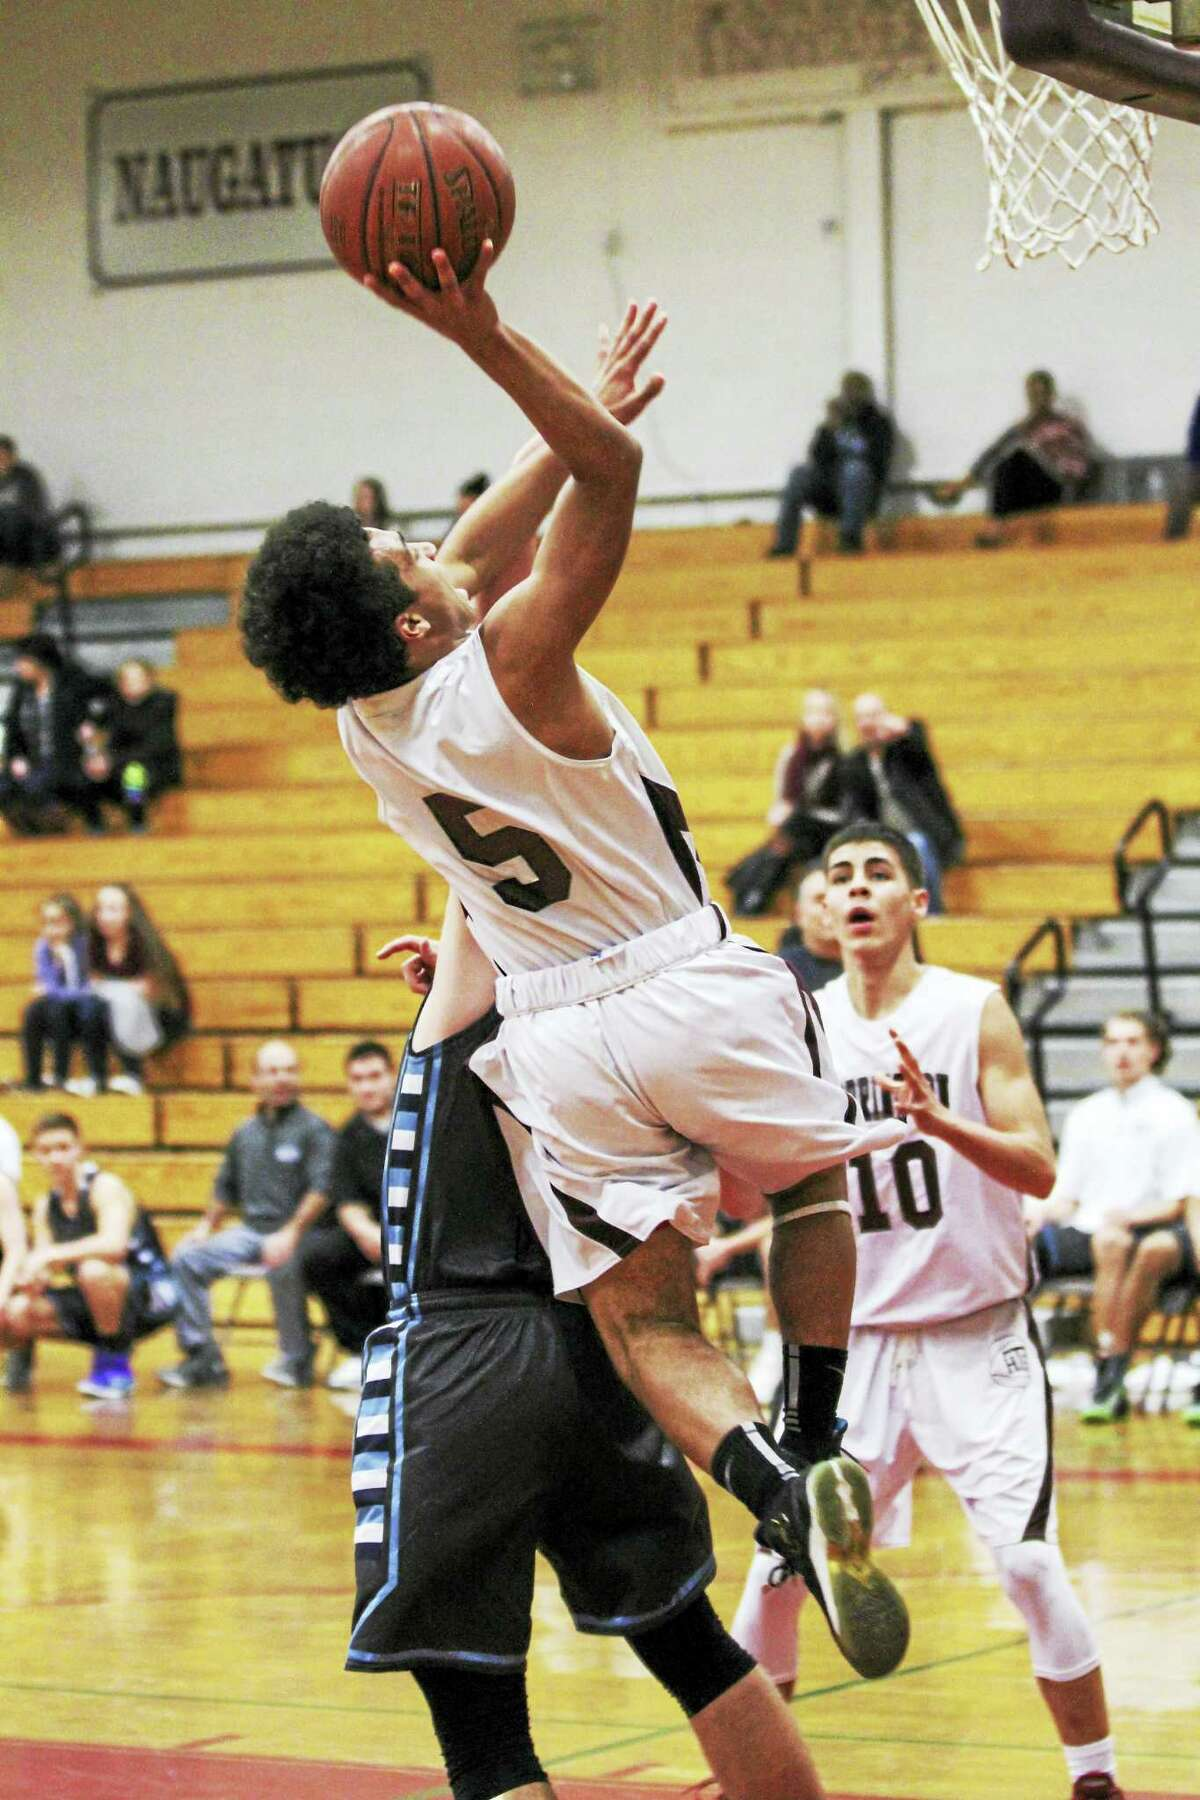 In a game with a near-chaotic pace, Dontae Thomas gets in for a layup while Joel Villanueva sets for the rebound Wednesday against Oxford at Torrington High School.